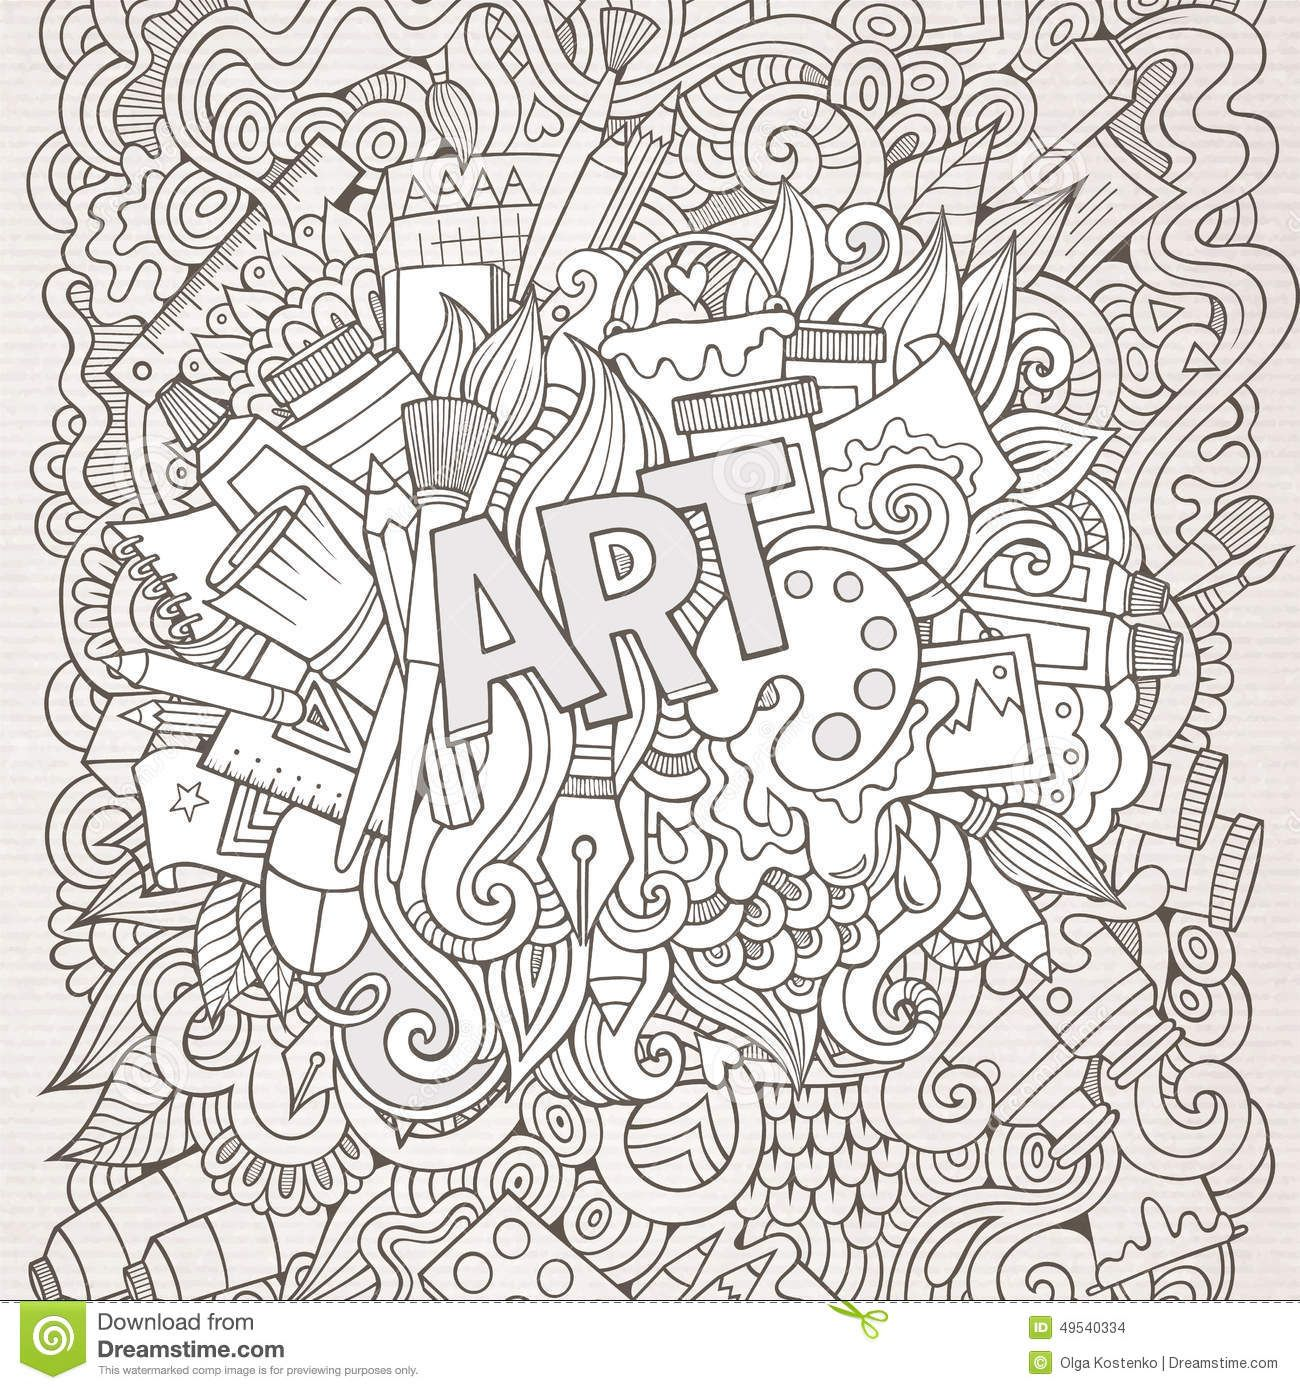 Zen doodle colour - Abstract Doodle Zentangle Zendoodle Paisley Coloring Pages Colouring Adult Detailed Advanced Printable Kleuren Voor Volwassenen Coloriage